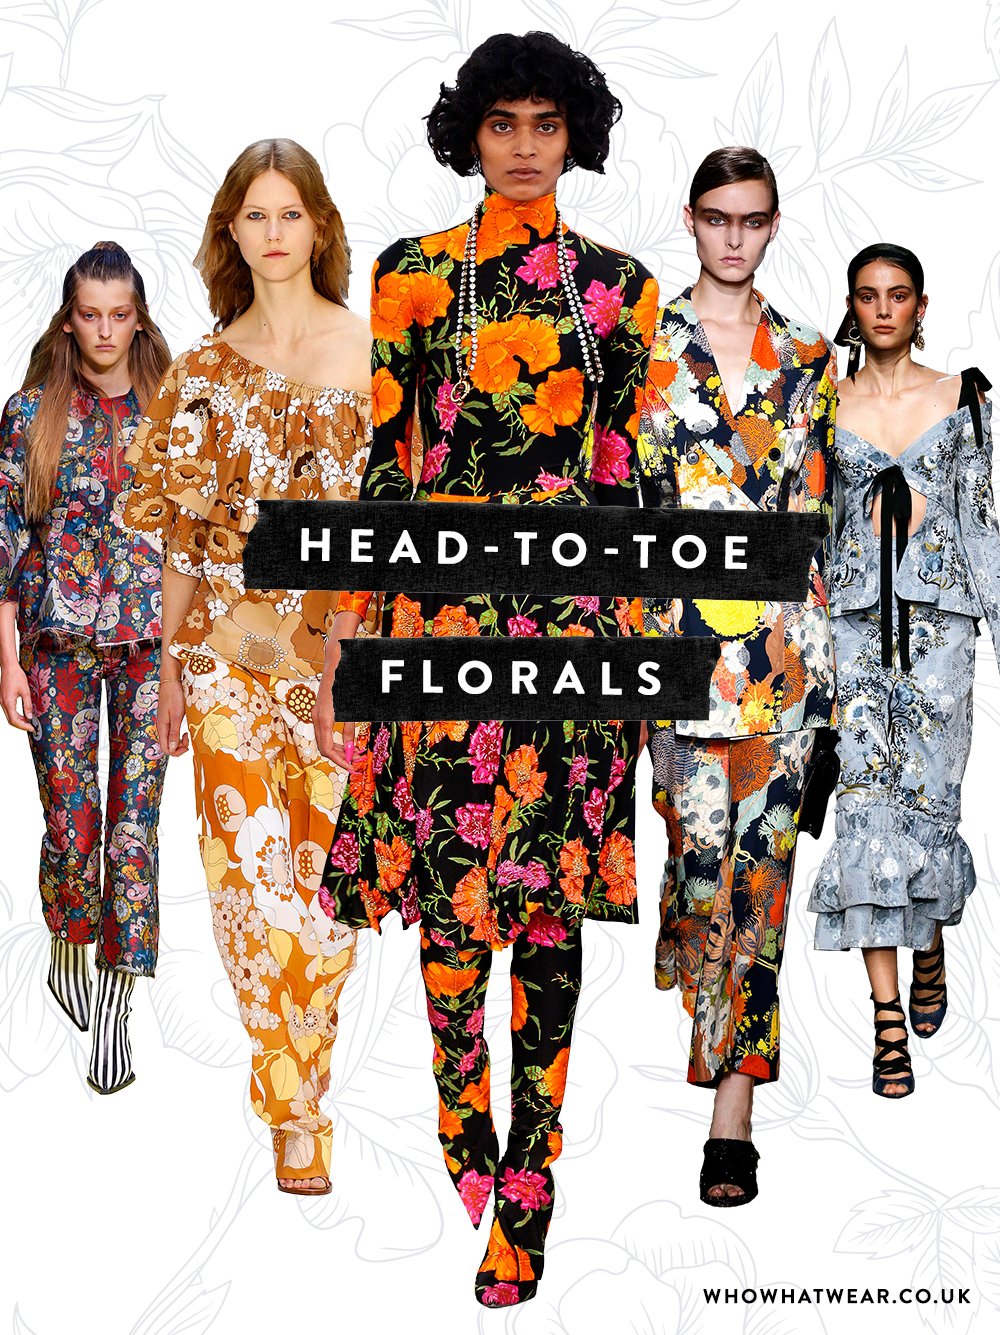 UK-Collage-Head-To-Toe-Florals.jpg